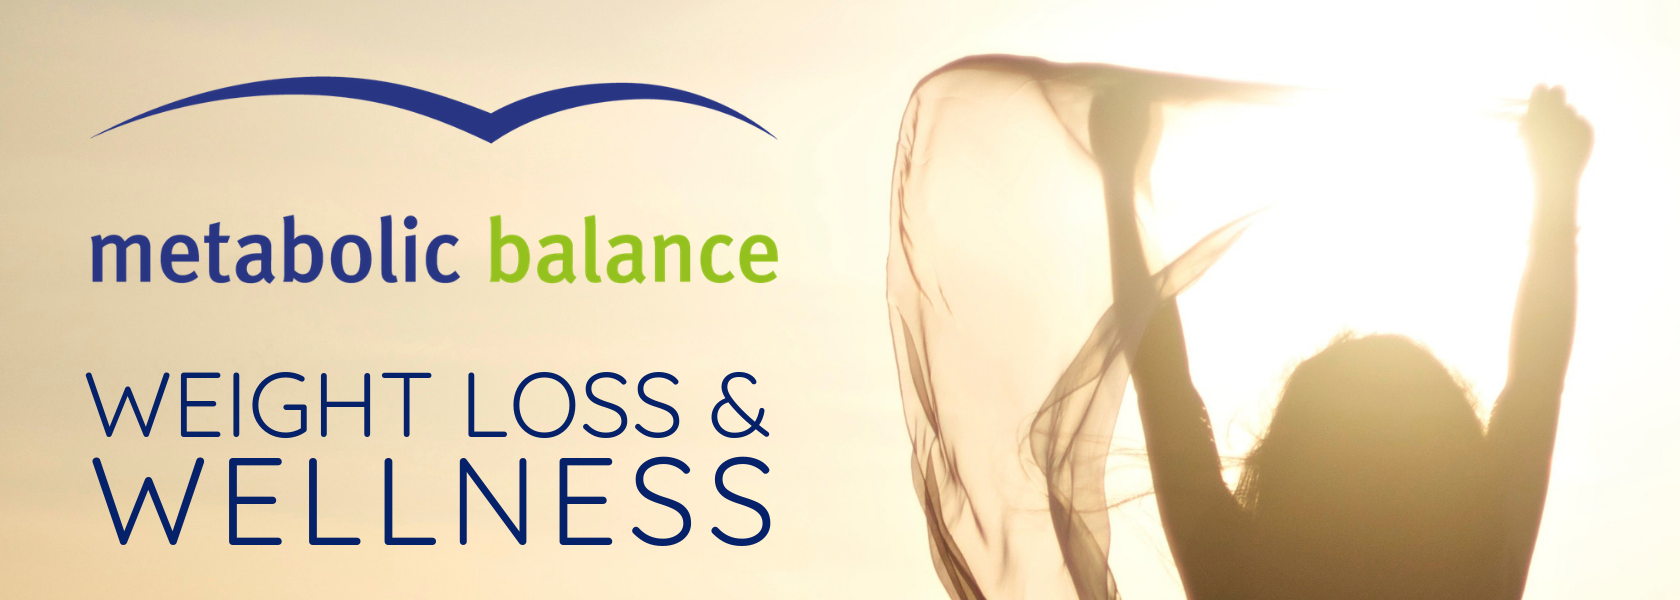 Metabolic Balance Weight Loss Newcastle